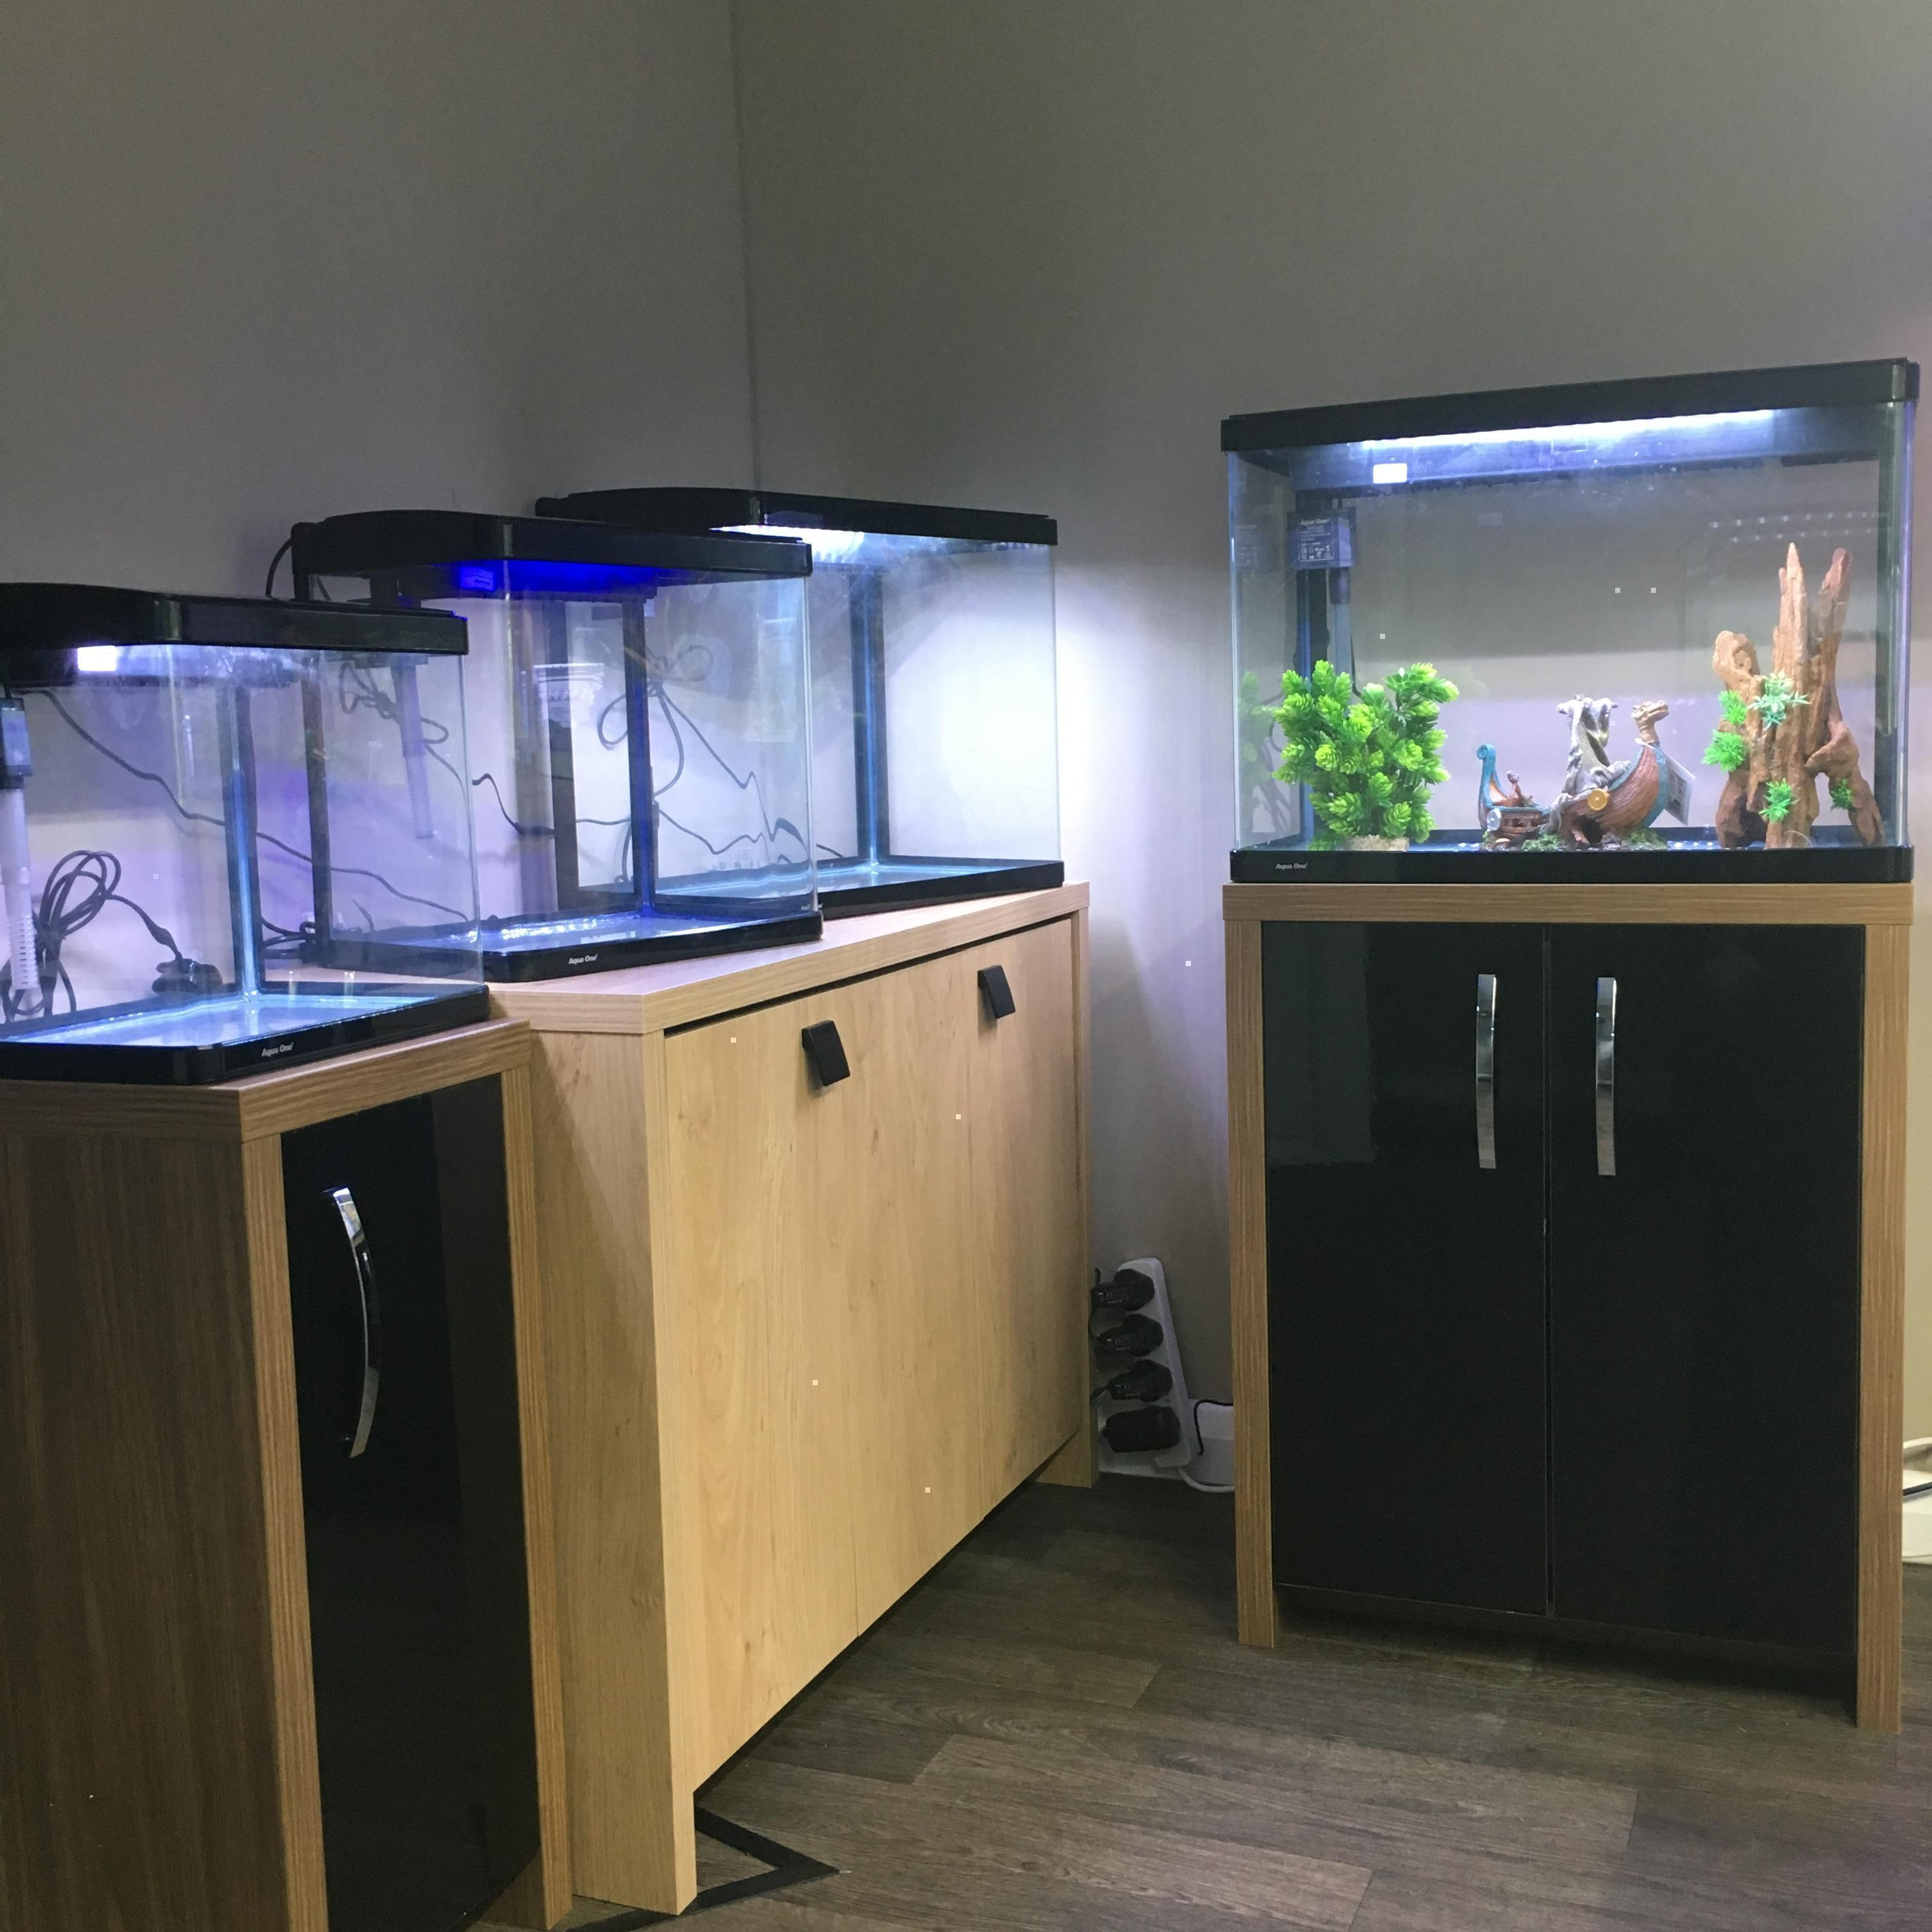 Add a heater for Tropical Fish